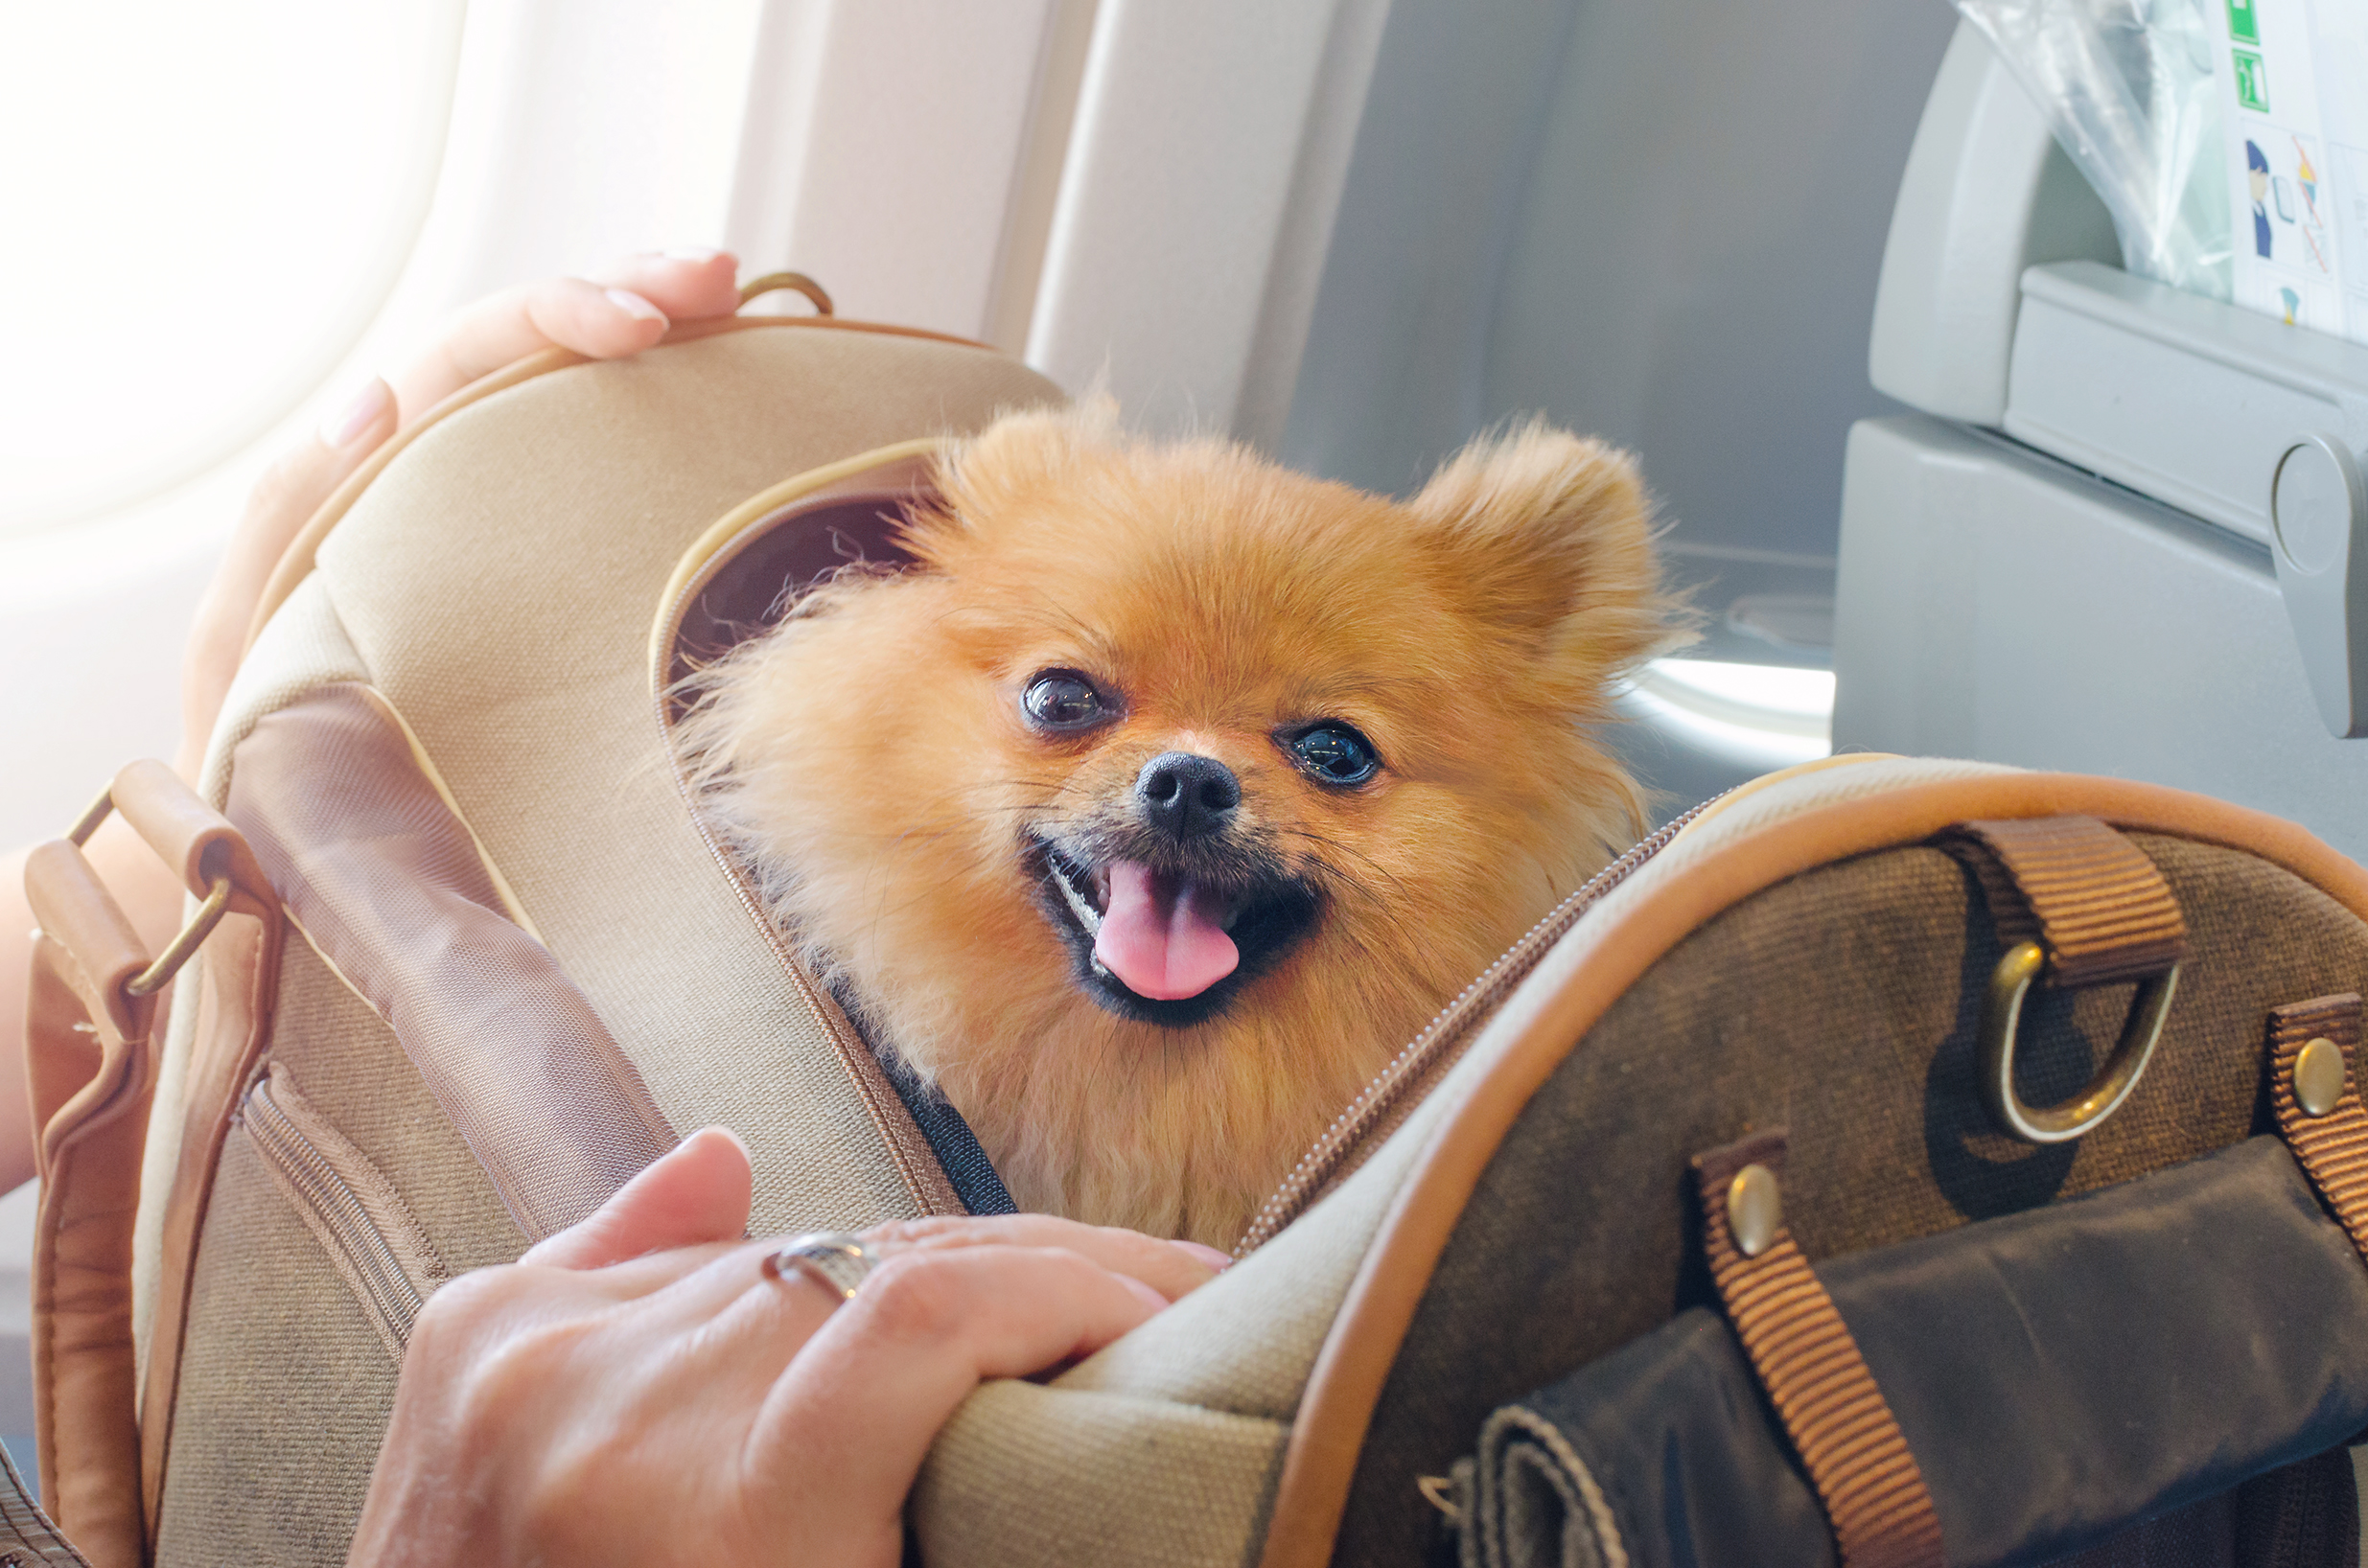 dog in a carrier bag on an airplane